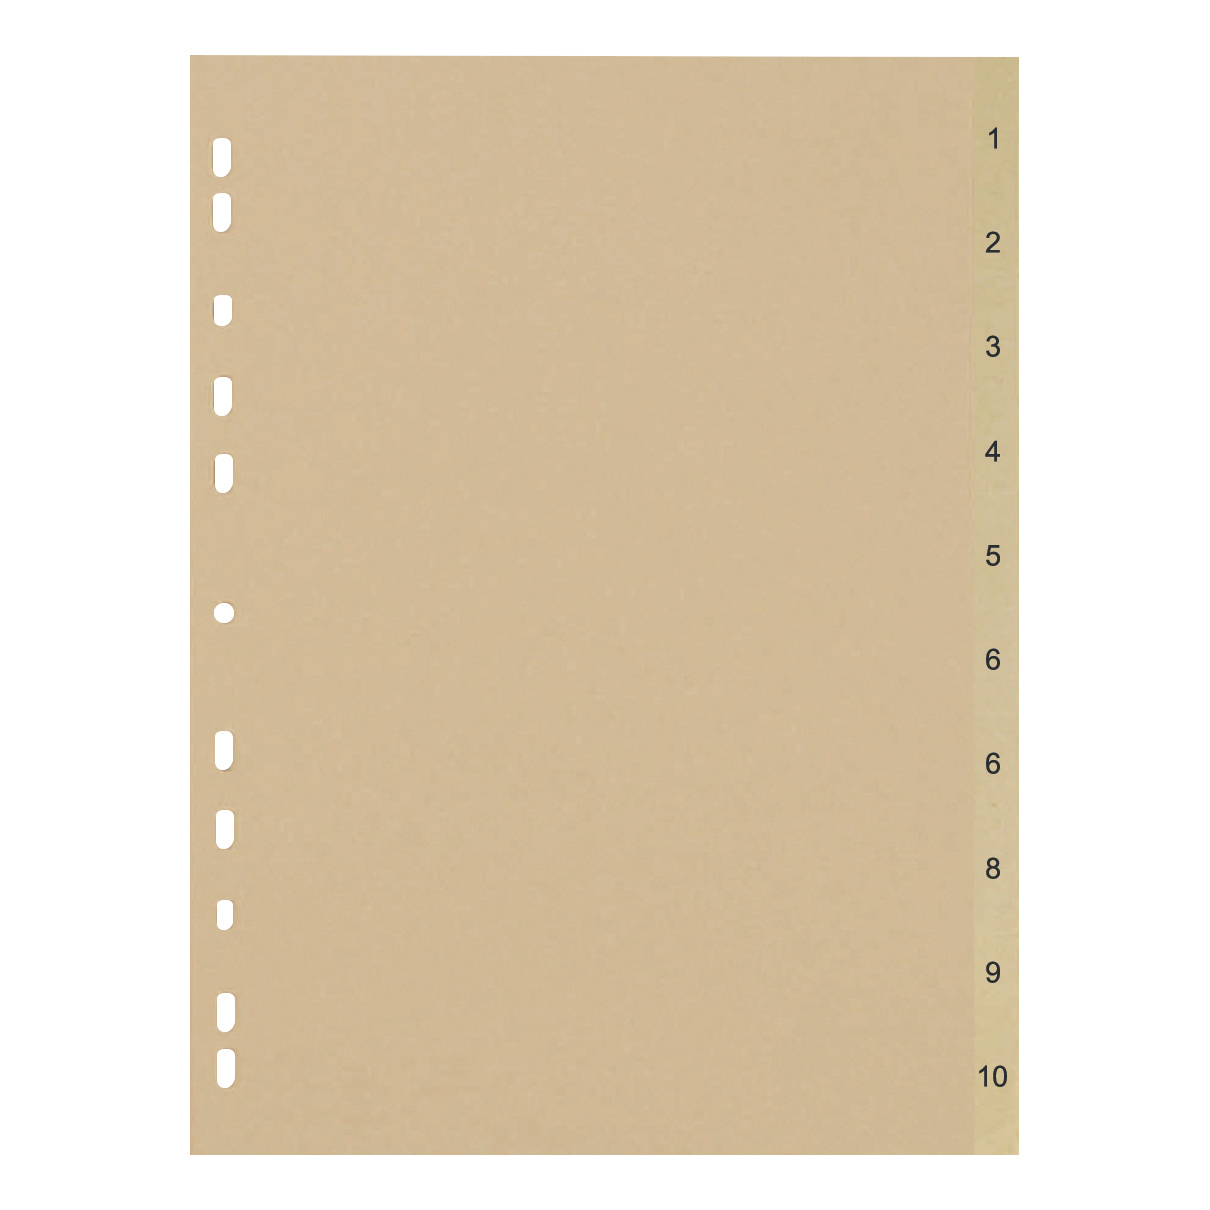 Dividers 5 Star Eco Index 1-10 Recycled Card Multipunched 150gsm A4 Buff